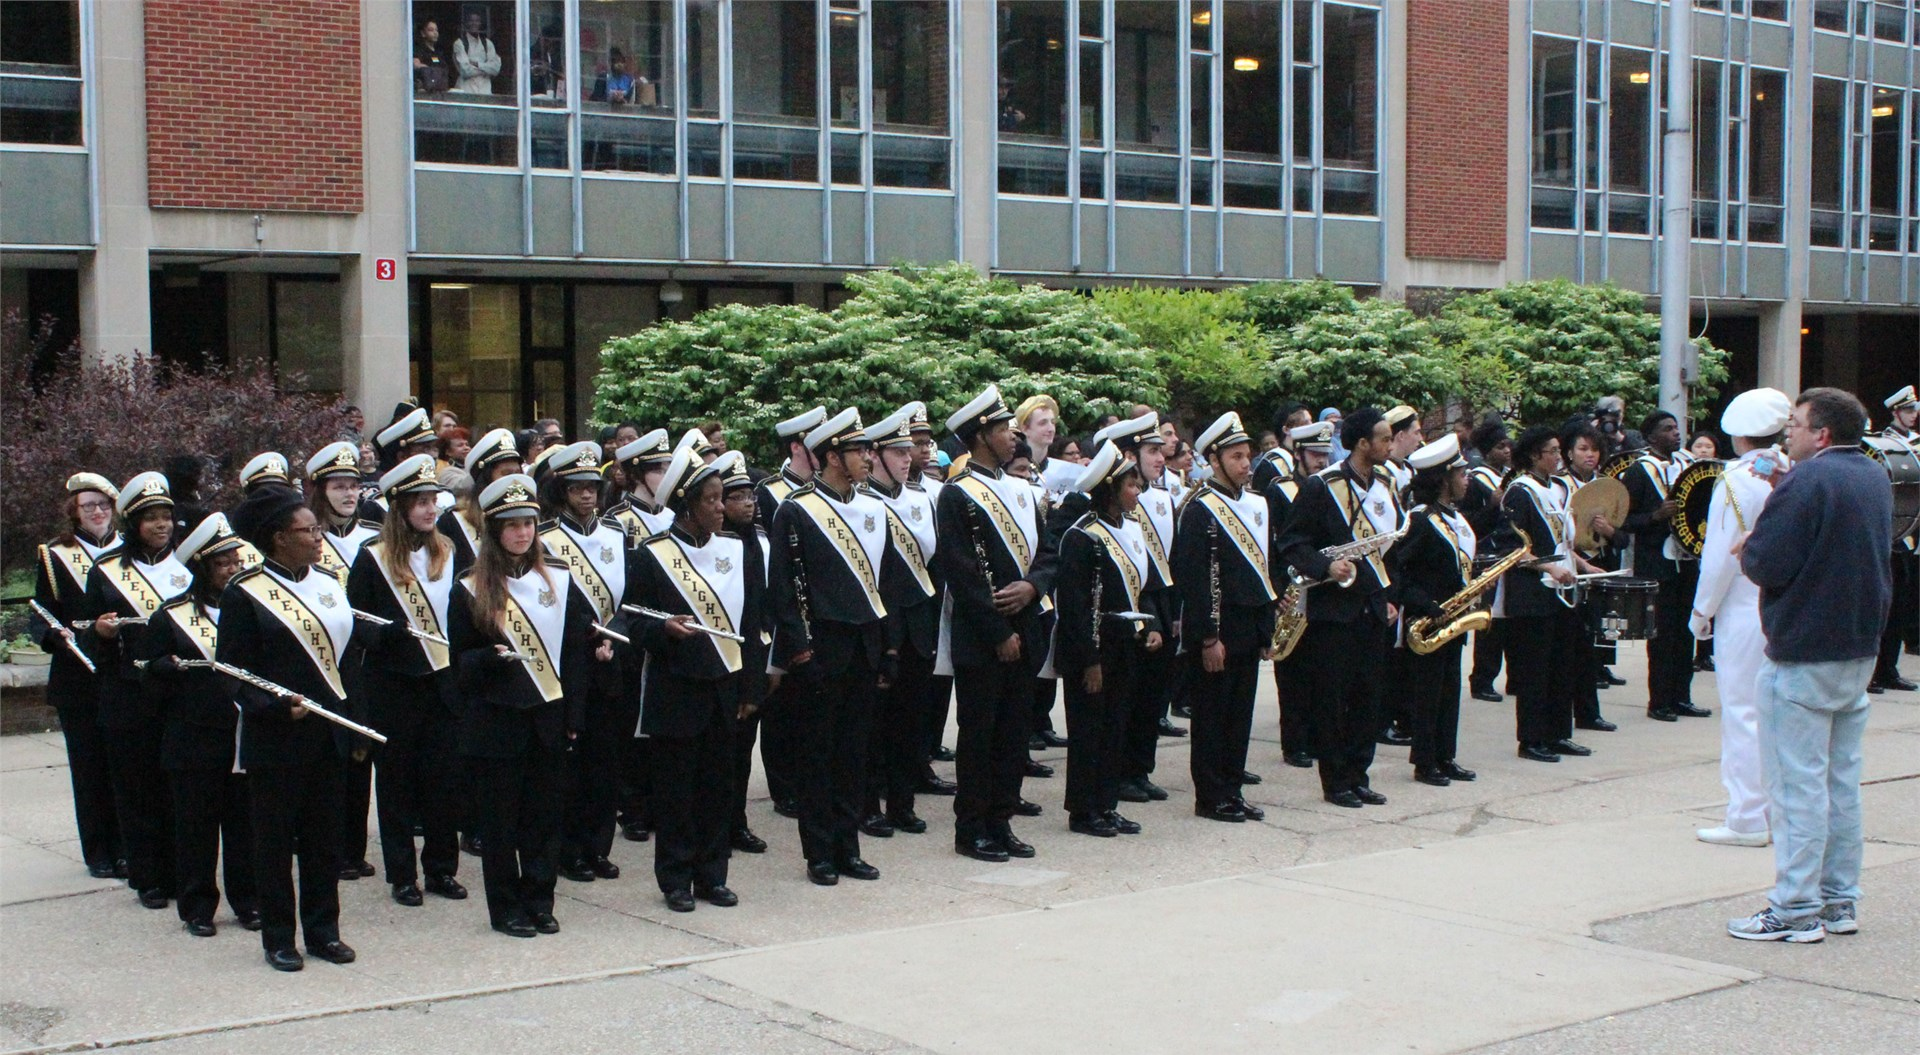 The Almighty Heights High Marching Band